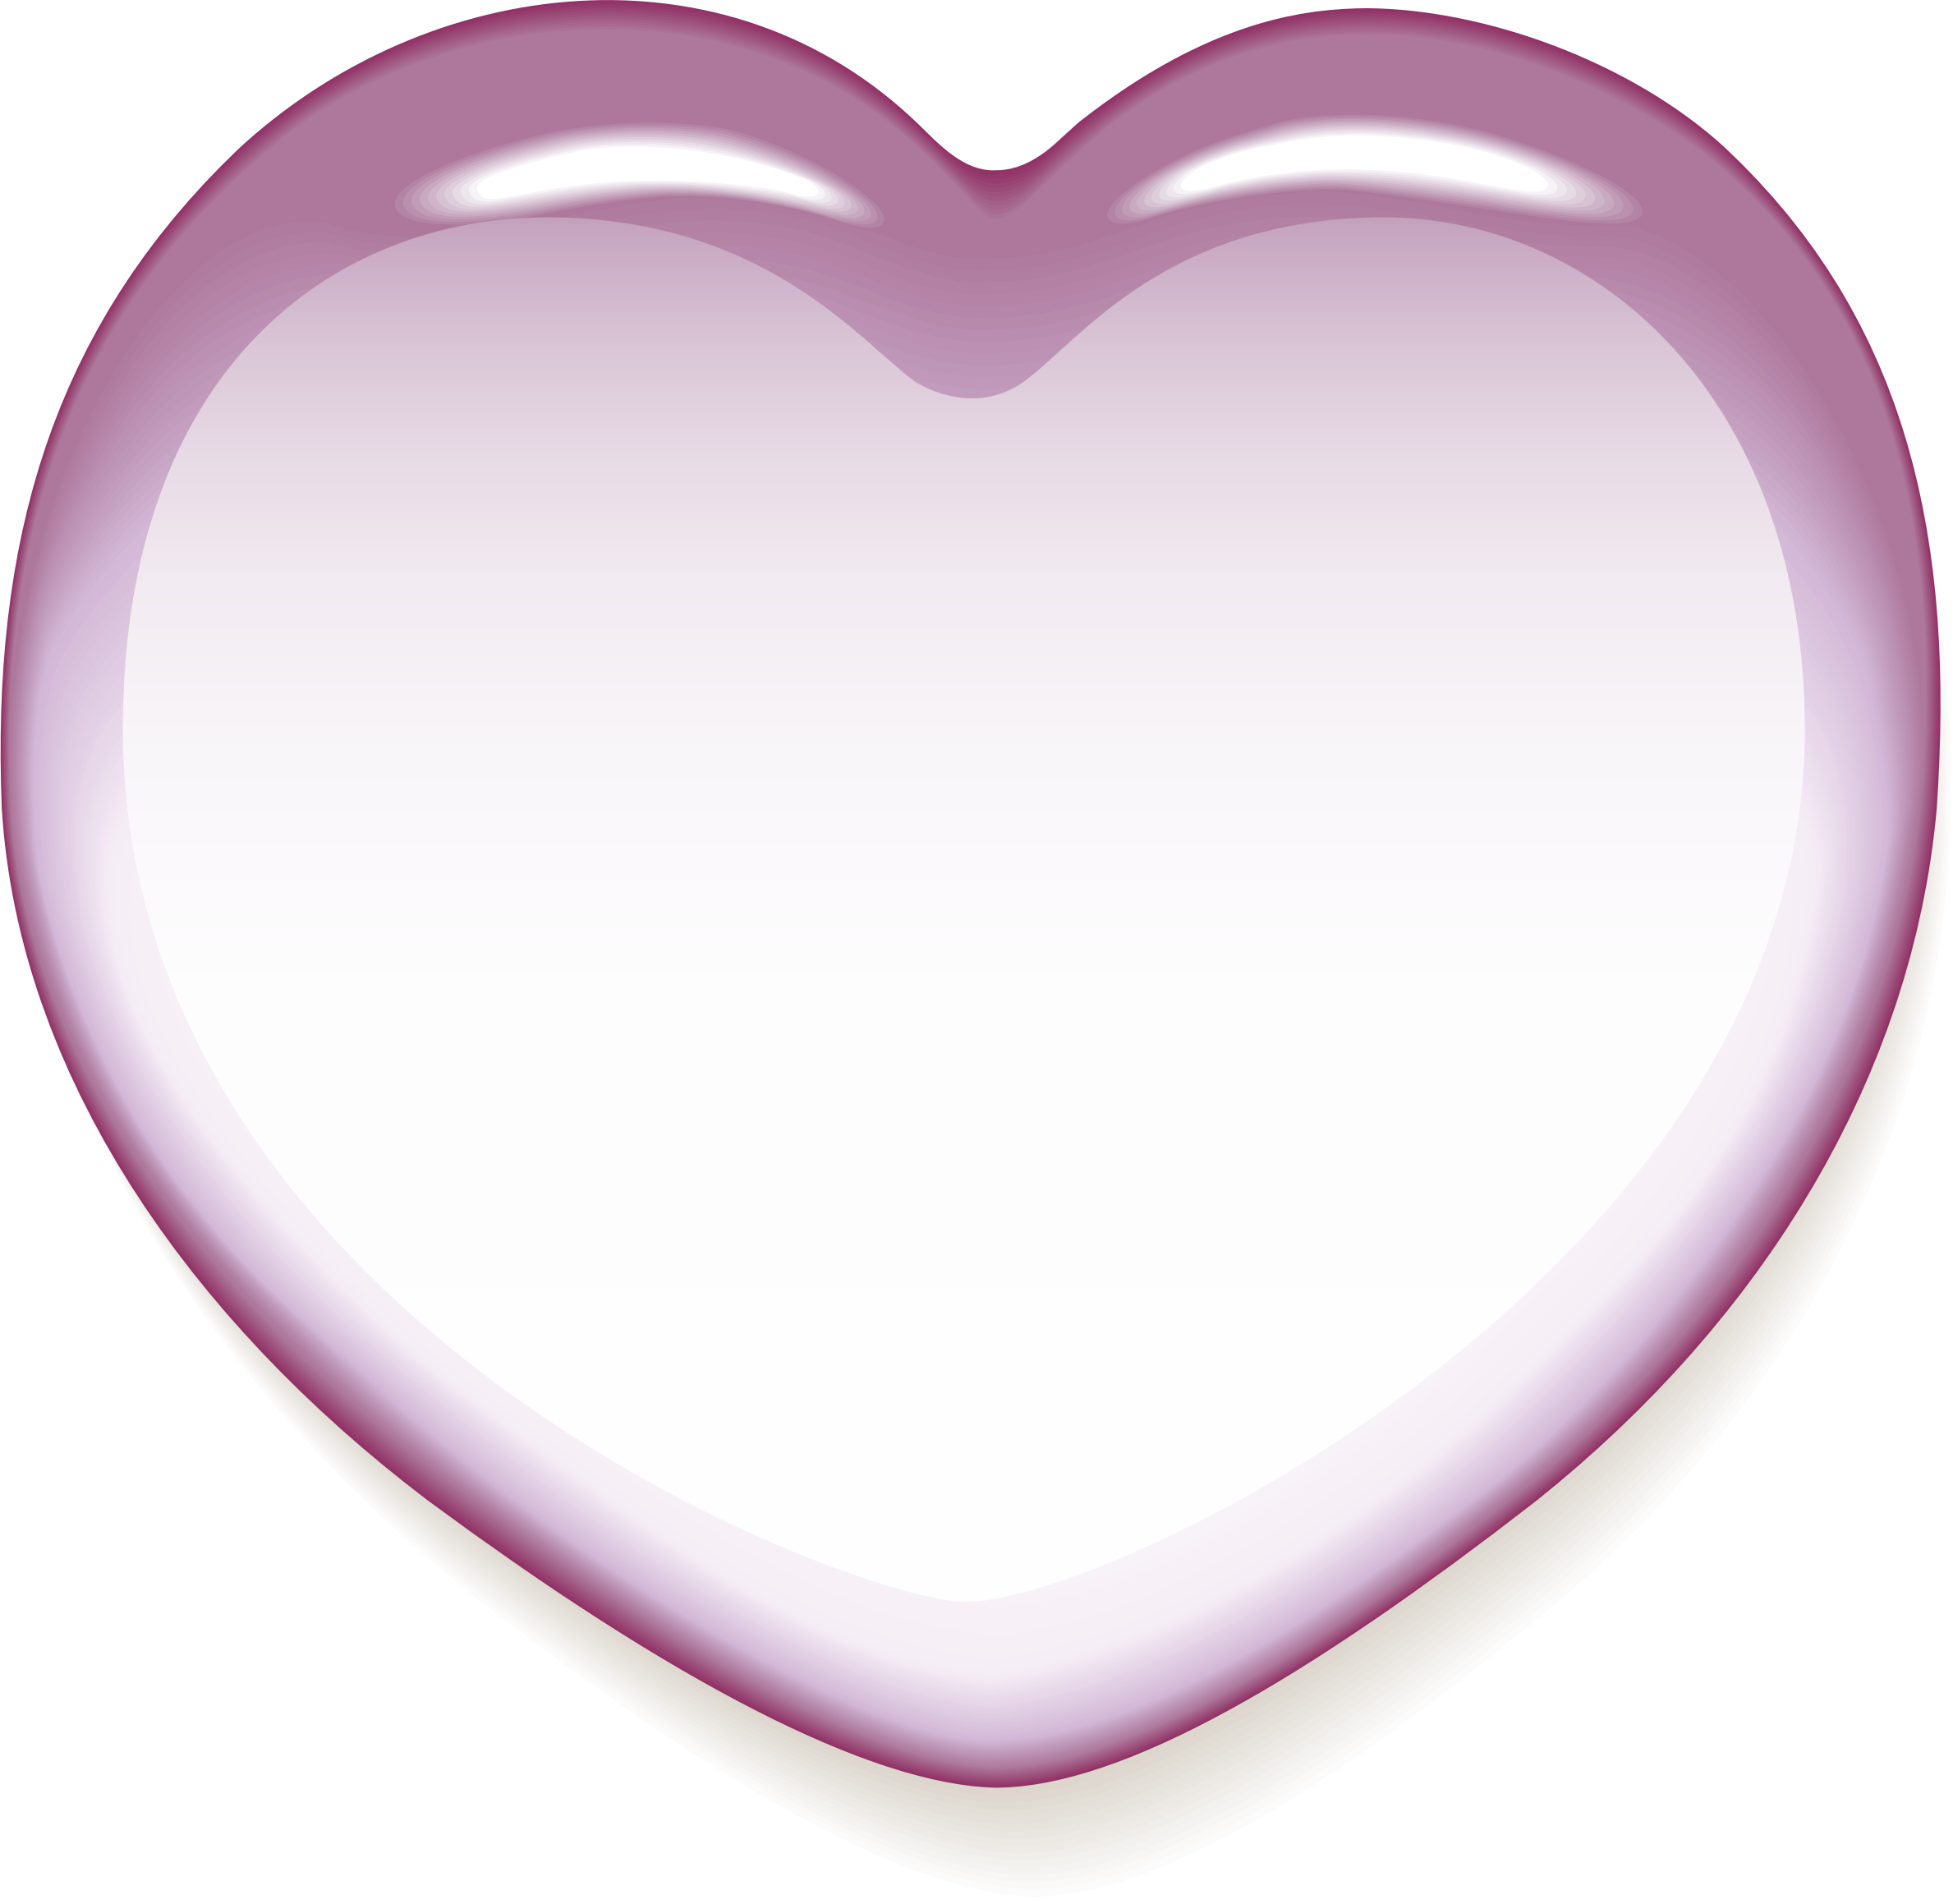 Heart png transparent pink. Shiny icons free and